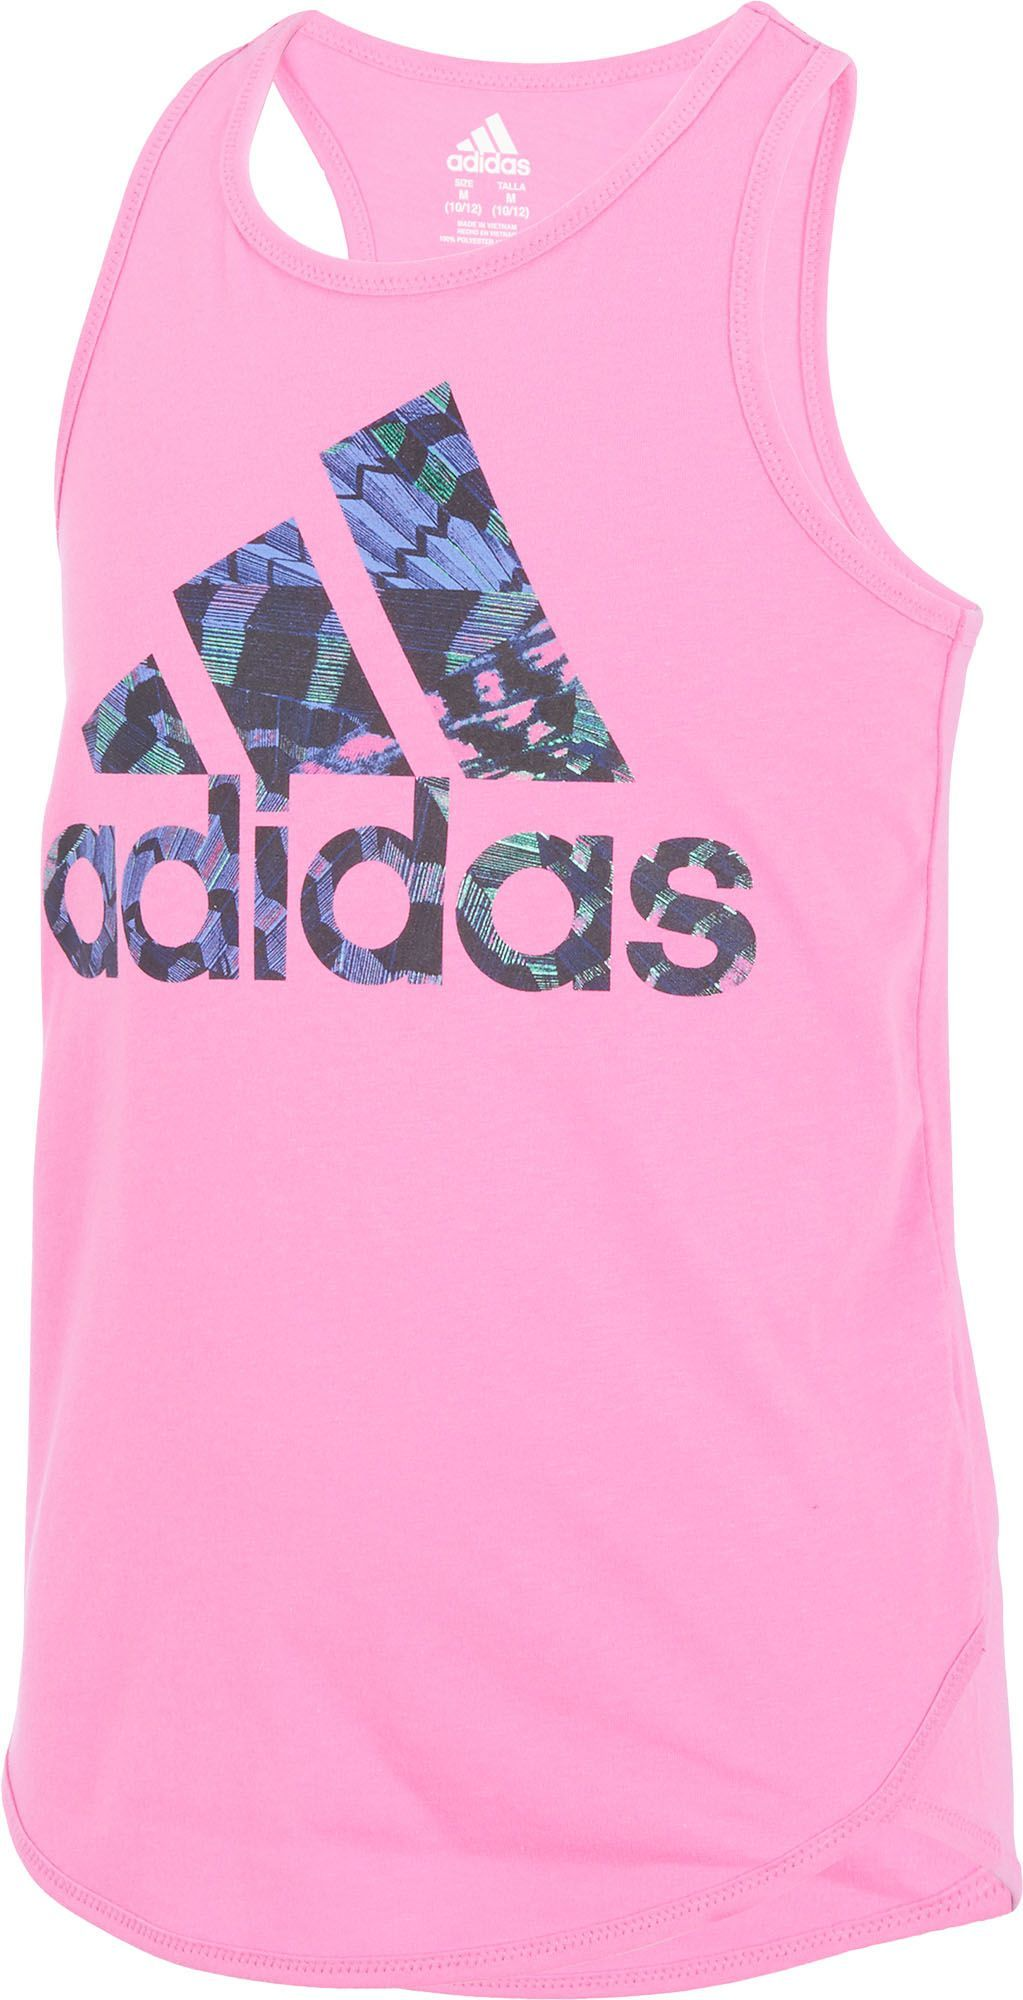 10 Best SPORT images | Fashion, Adidas, Athletic tank tops